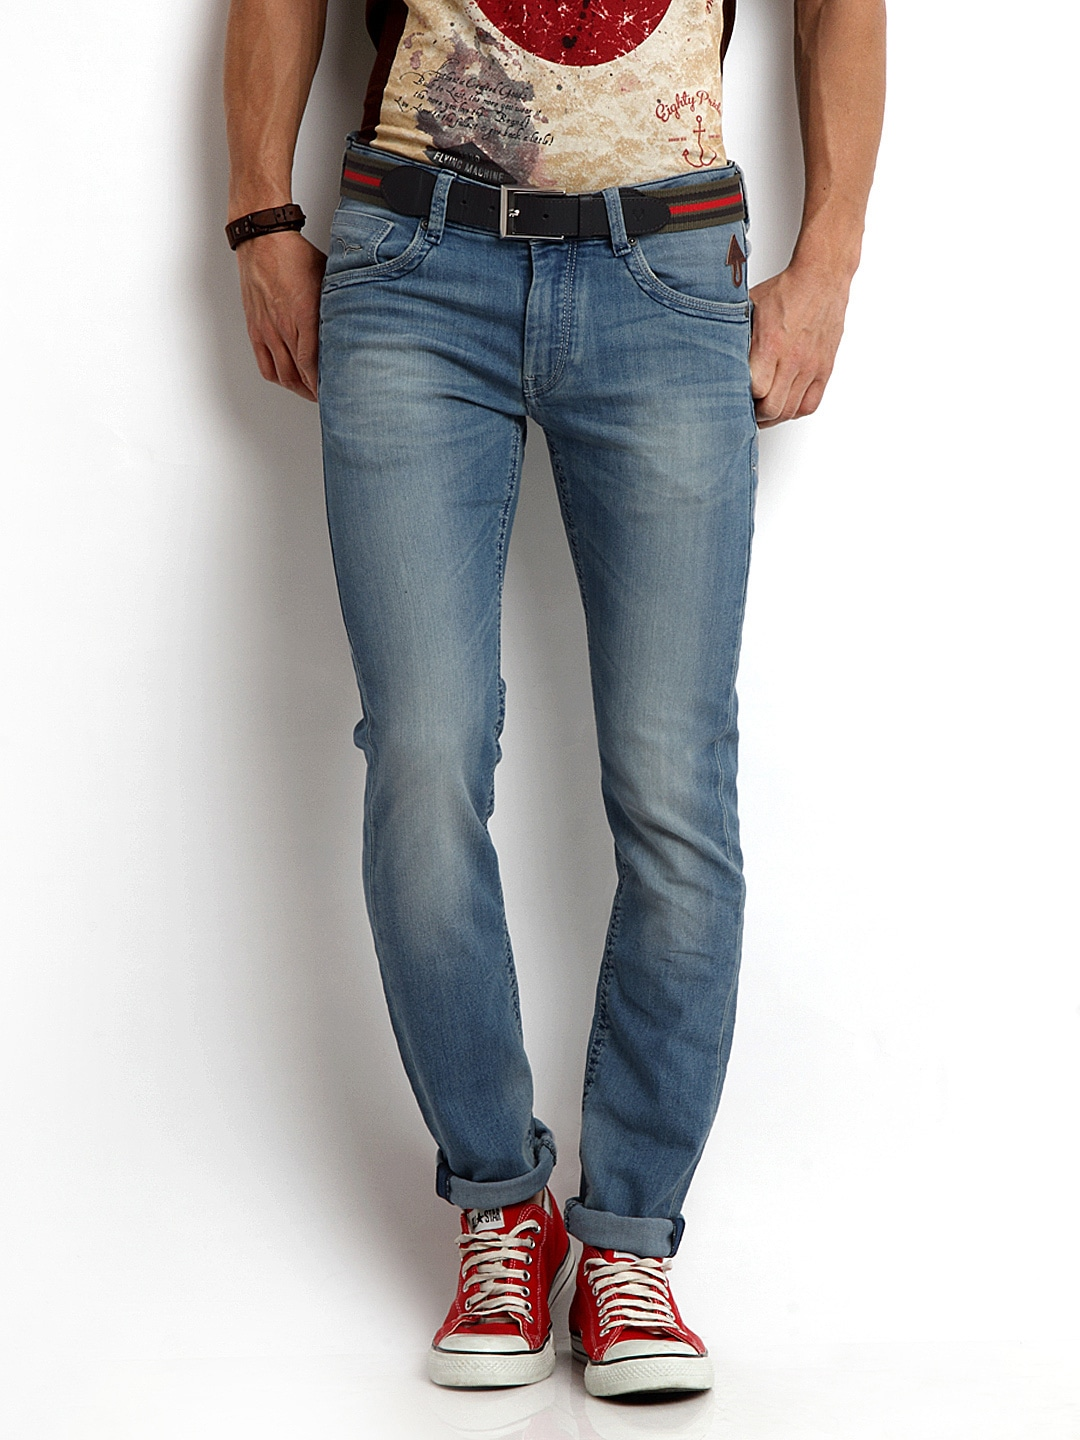 25 List of Indiau0026#39;s Top Most Branded Jeans Names | Styles At Life